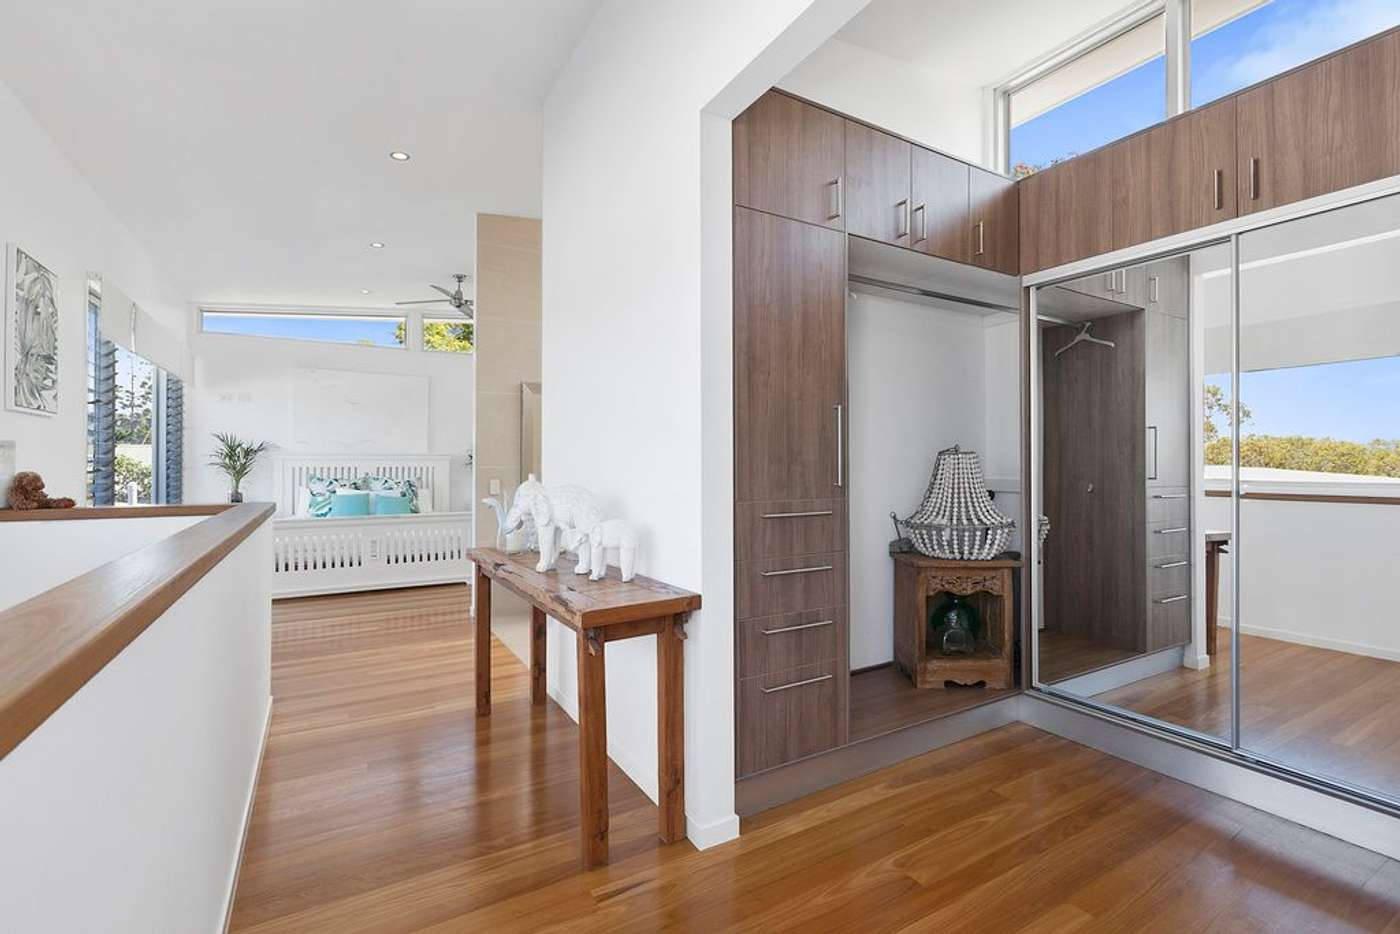 Sixth view of Homely house listing, 19 Nairana Rest, Noosa Heads QLD 4567